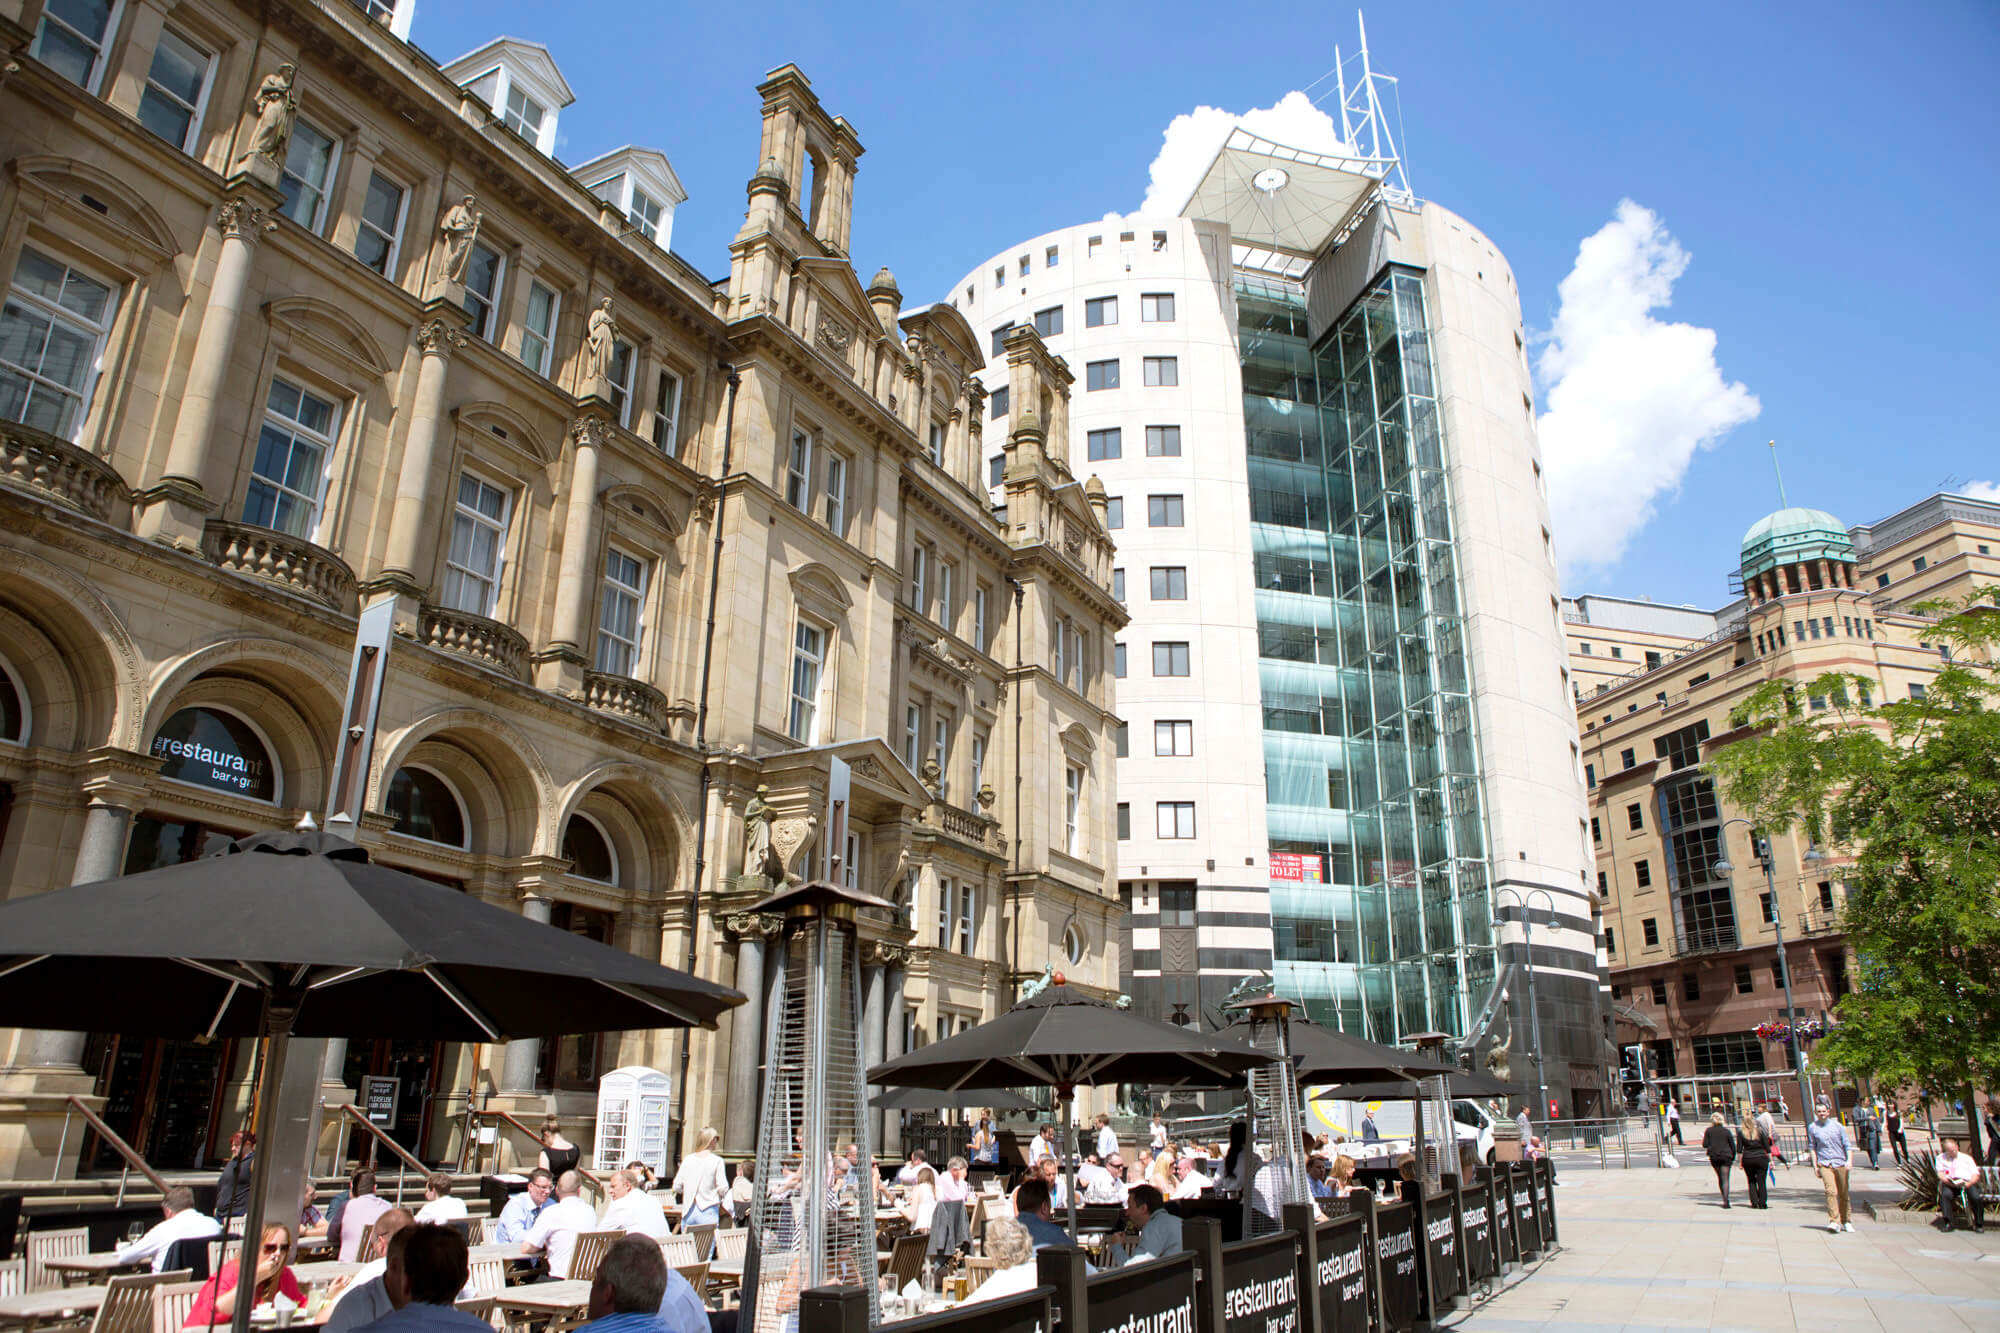 City Square, Leeds, LS1, Yorkshire And The Humber